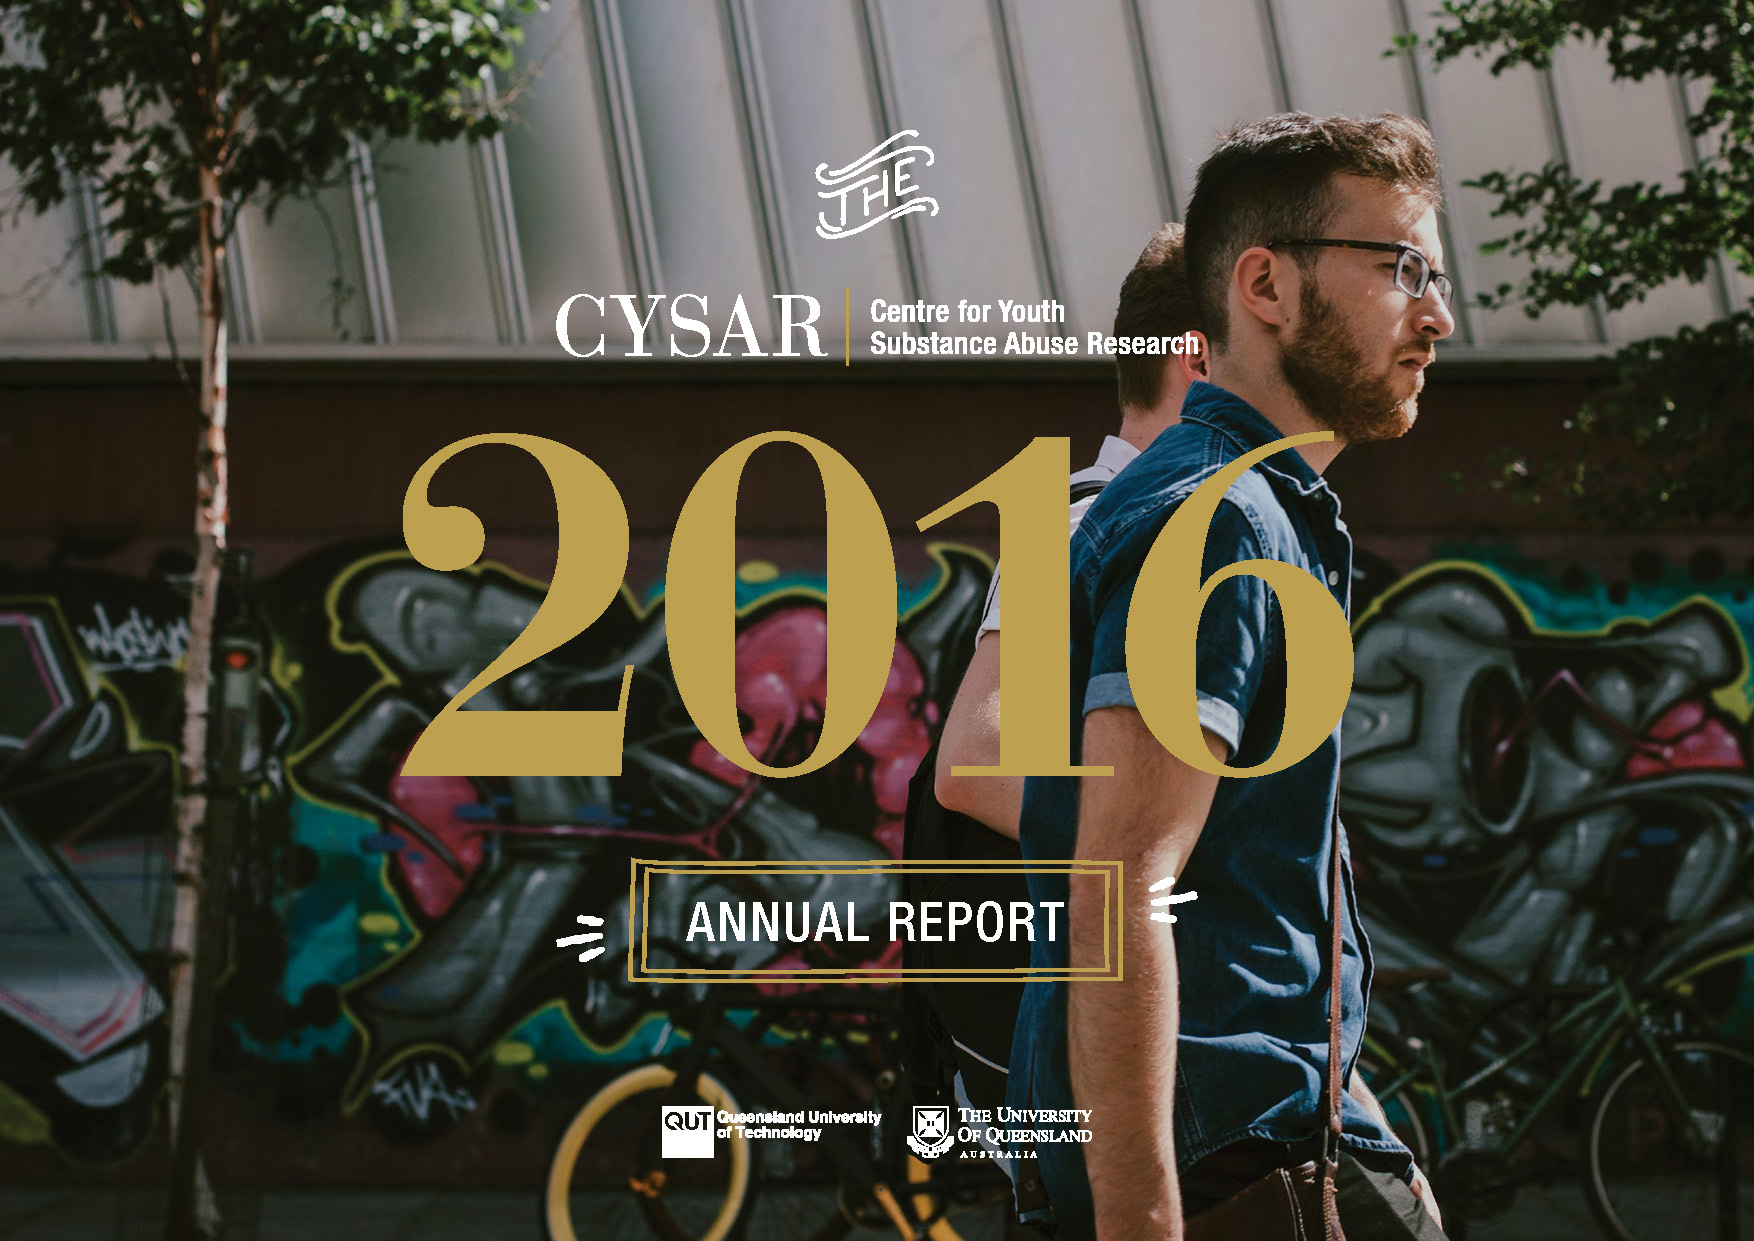 CYSAR annual report